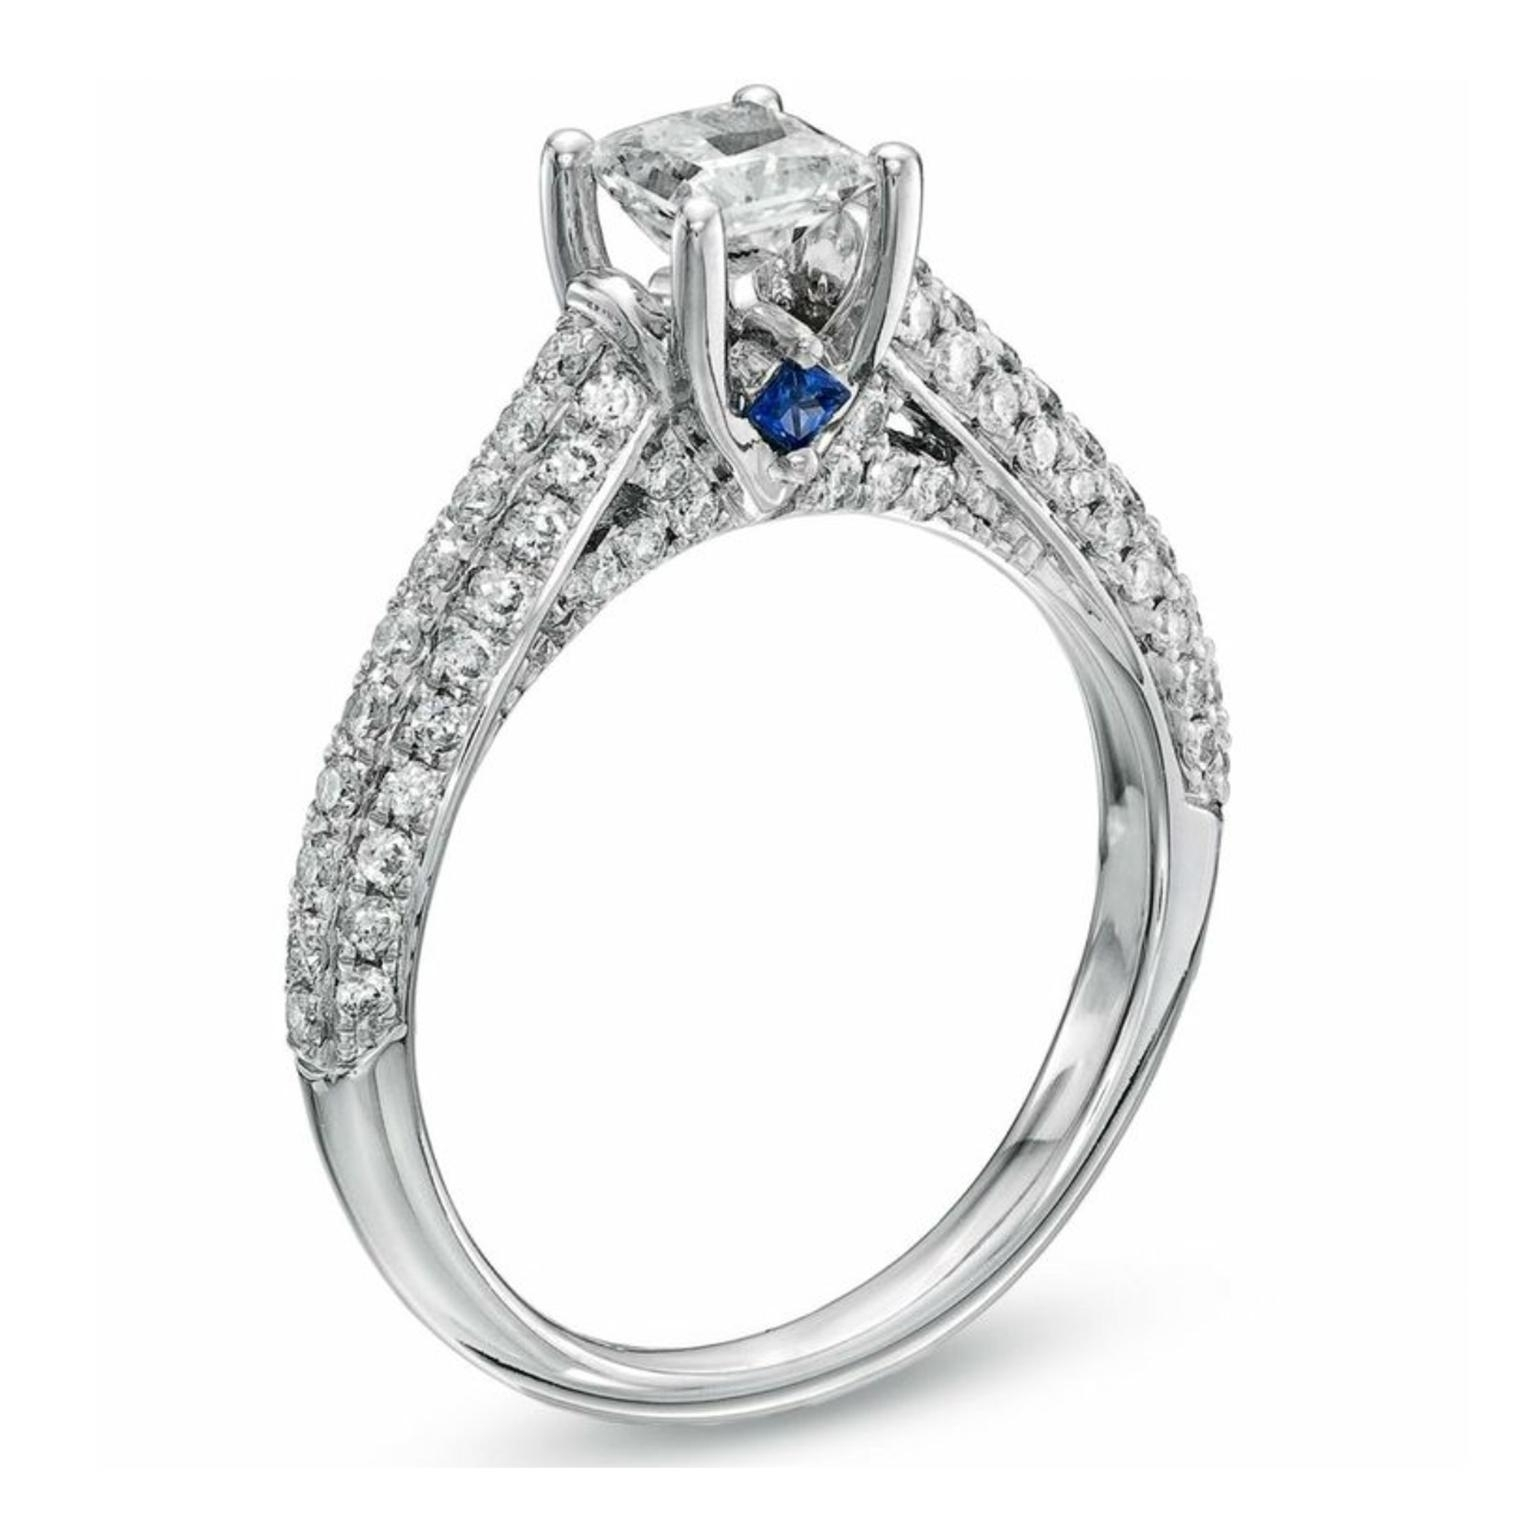 Love Princess Cut Diamond Engagement Ring | Vera Wang | The Regarding 2017 Vintage Style Diamond And Sapphire Engagement Rings (View 9 of 15)